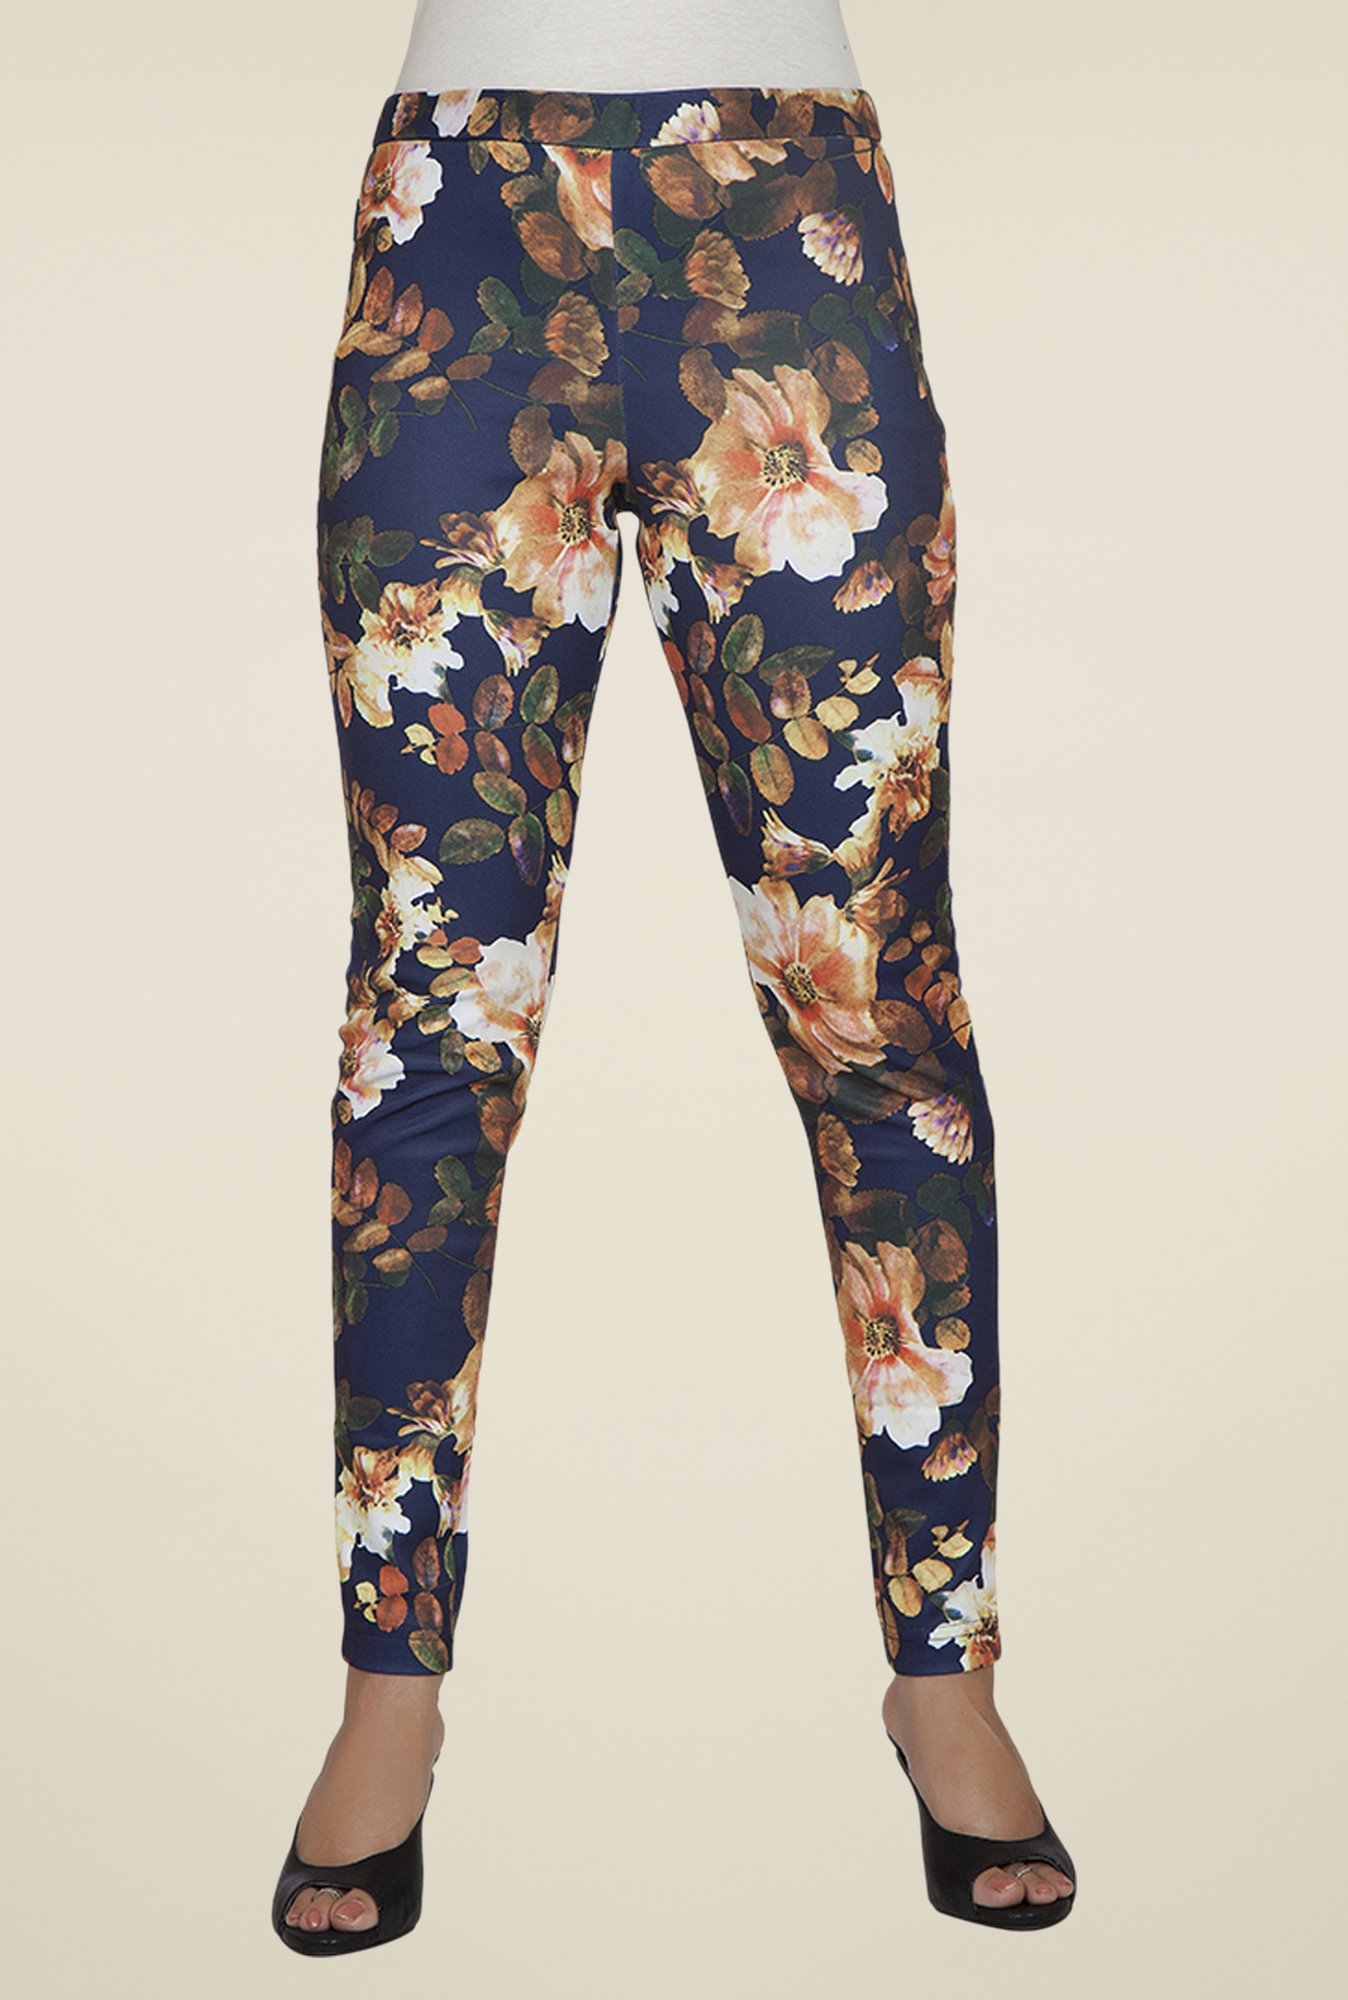 Desi Belle Navy Floral Jeggings